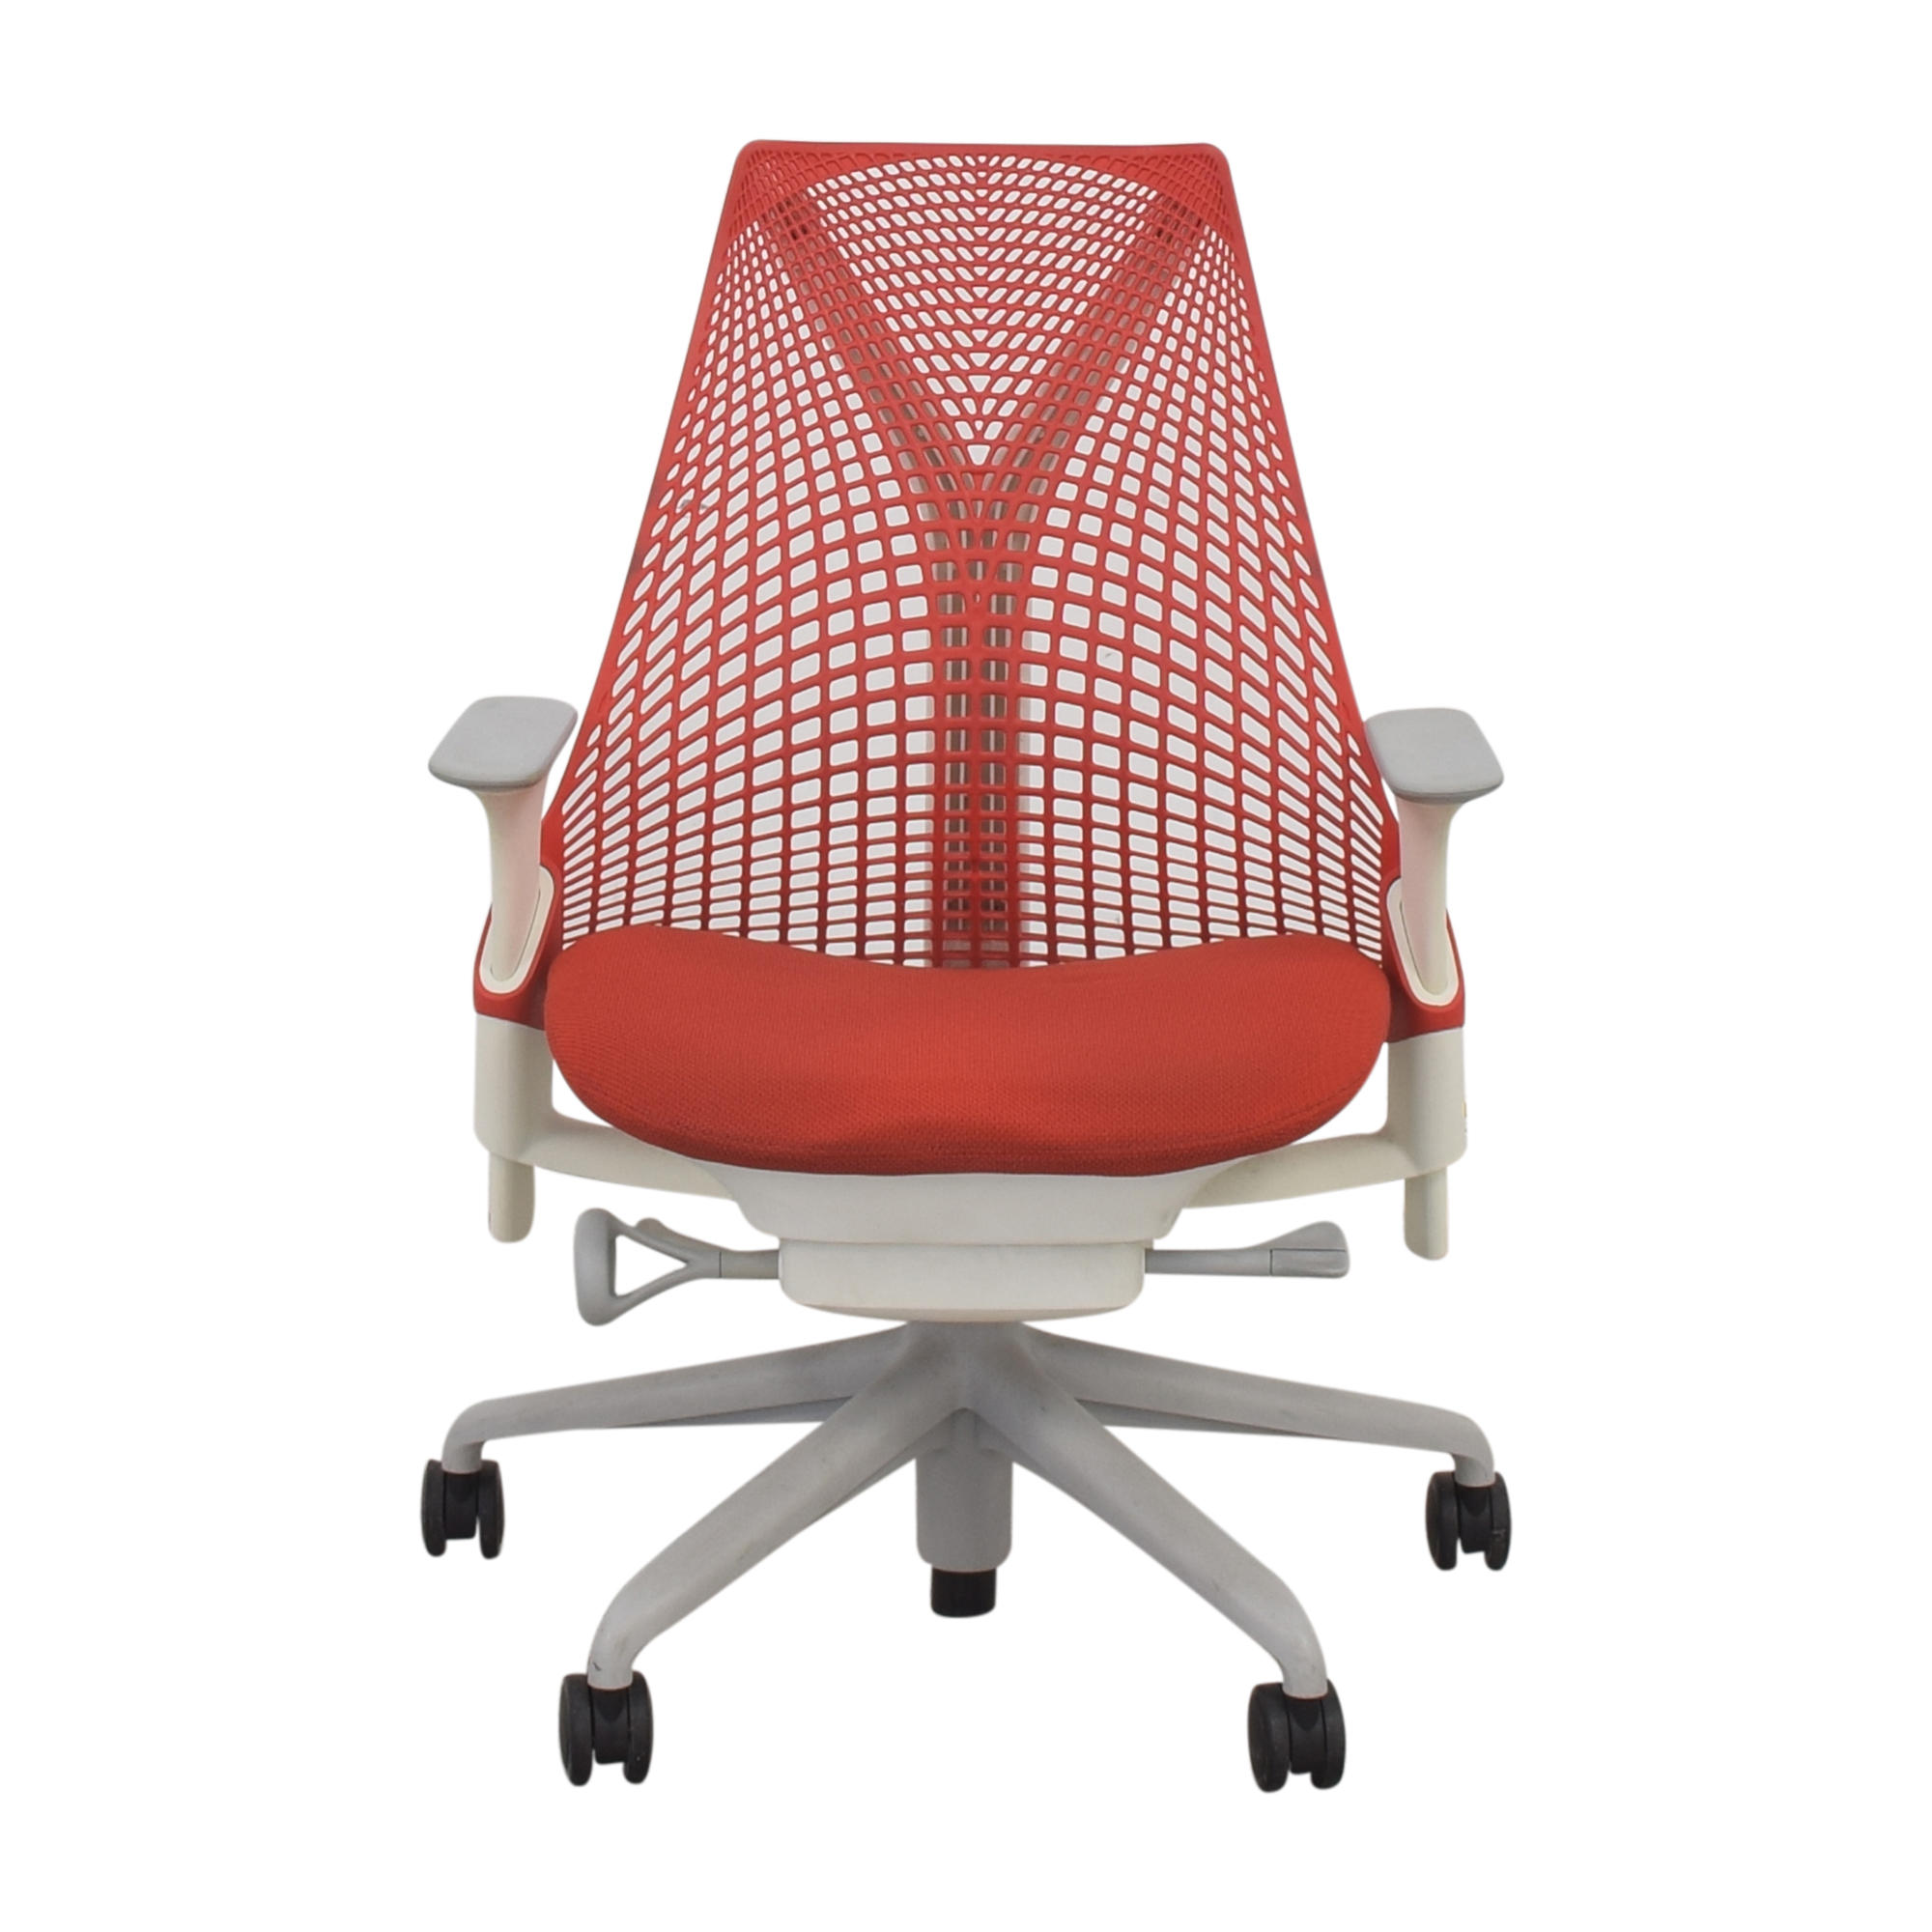 Herman Miller Herman Miller Sayl Chair ct